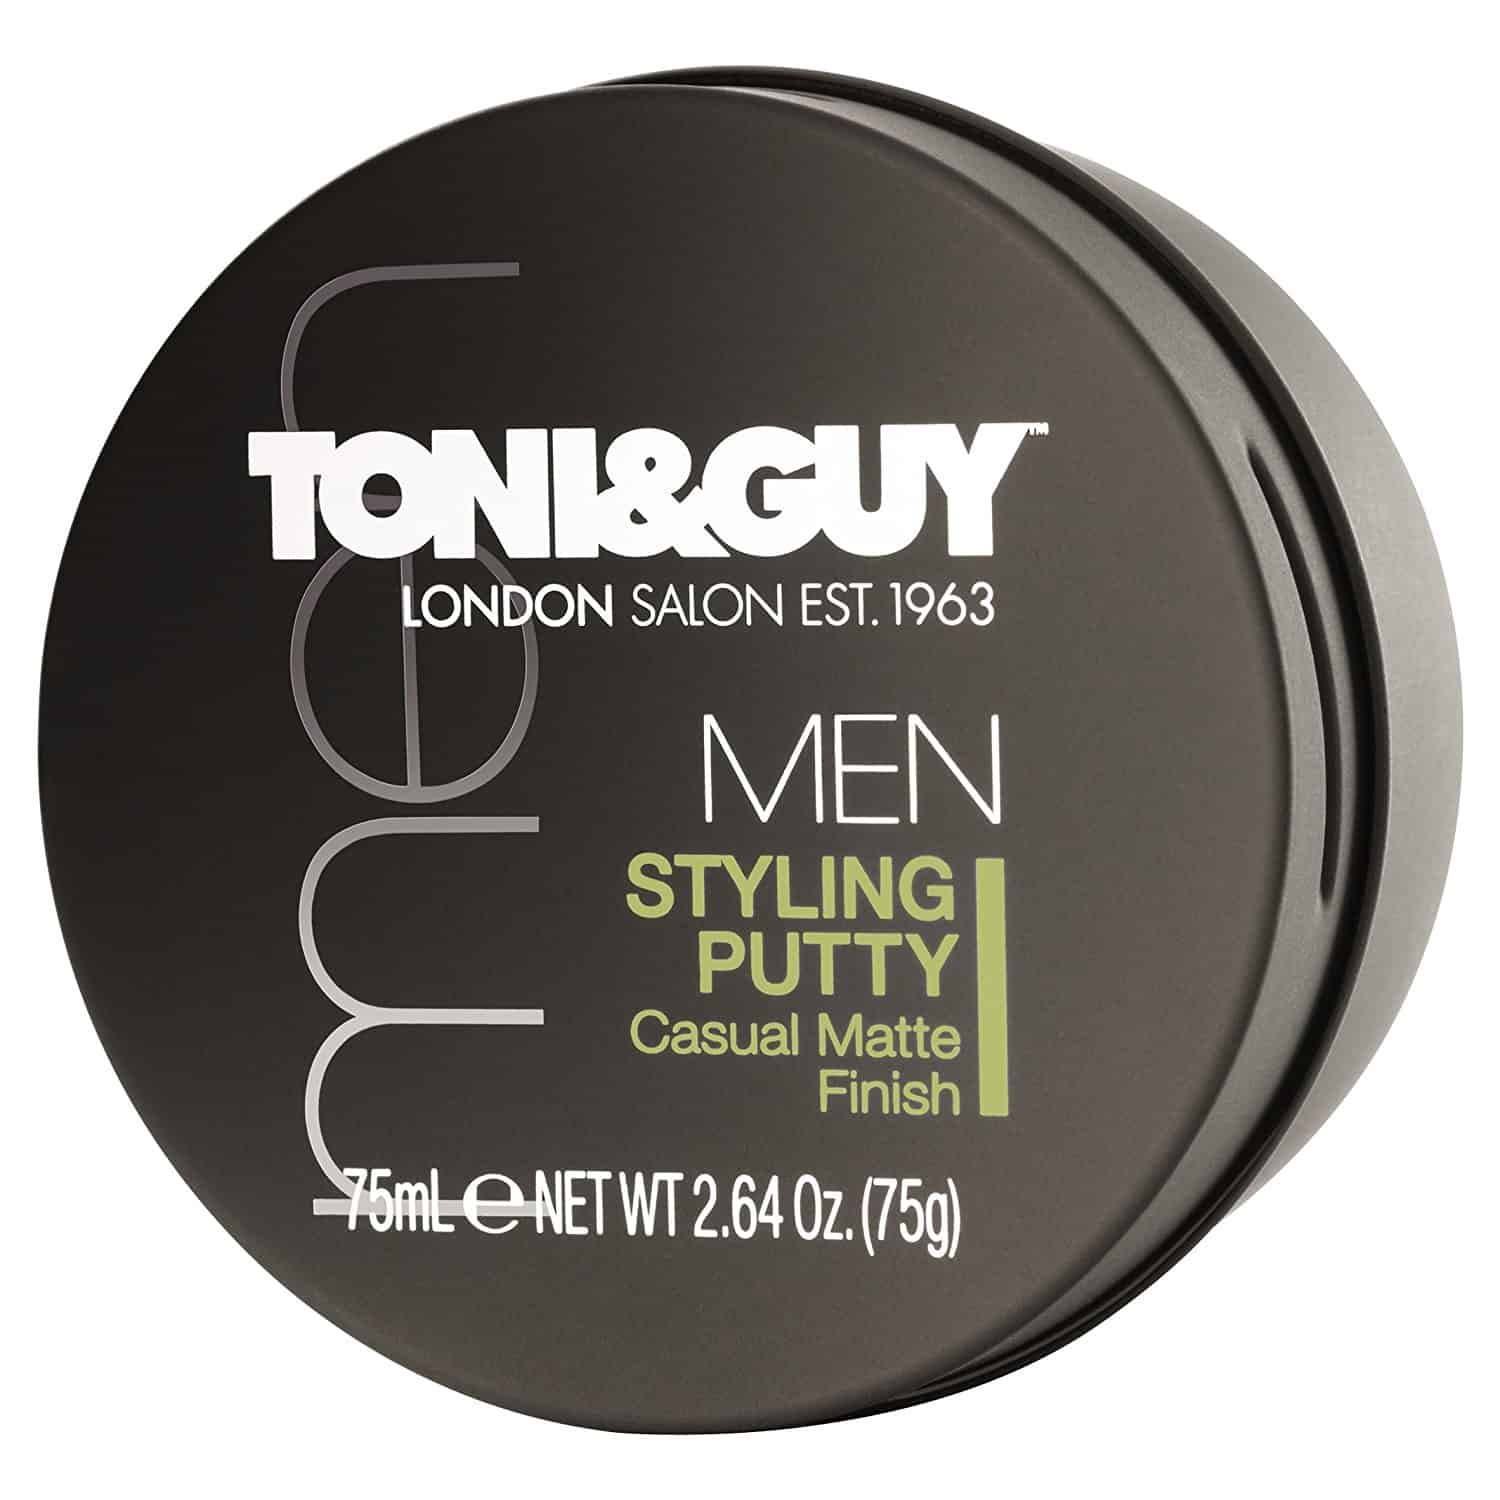 Toni & Guy putty